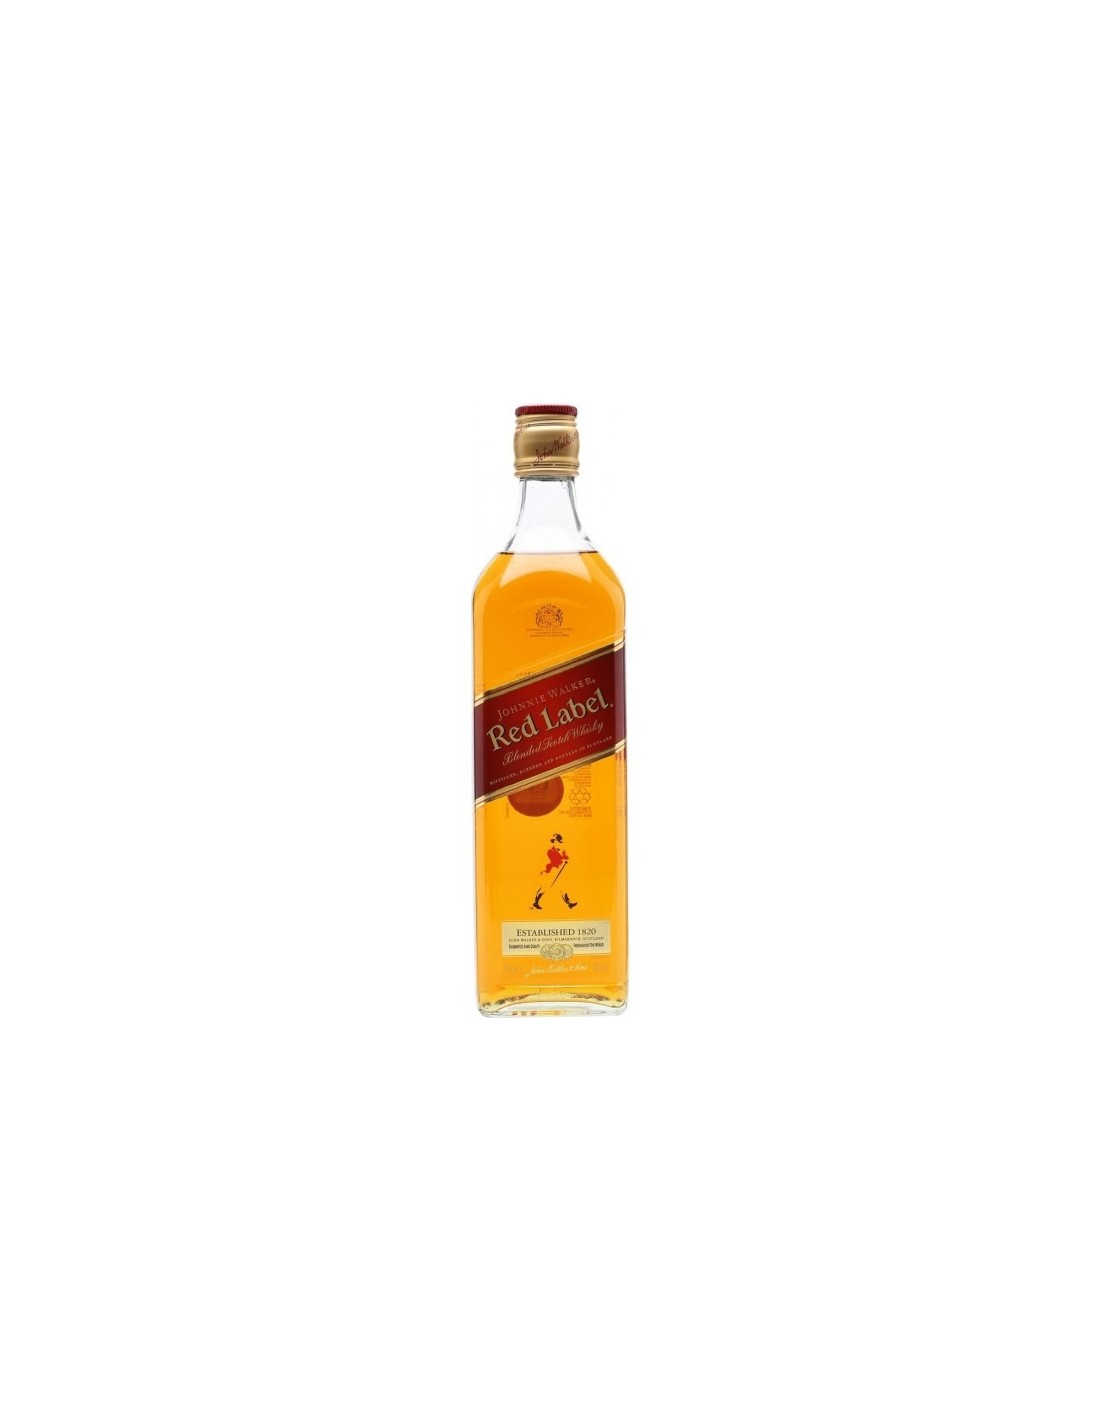 Whisky Johnnie Walker Red Label, 40% alc., 0.5L, Scotia